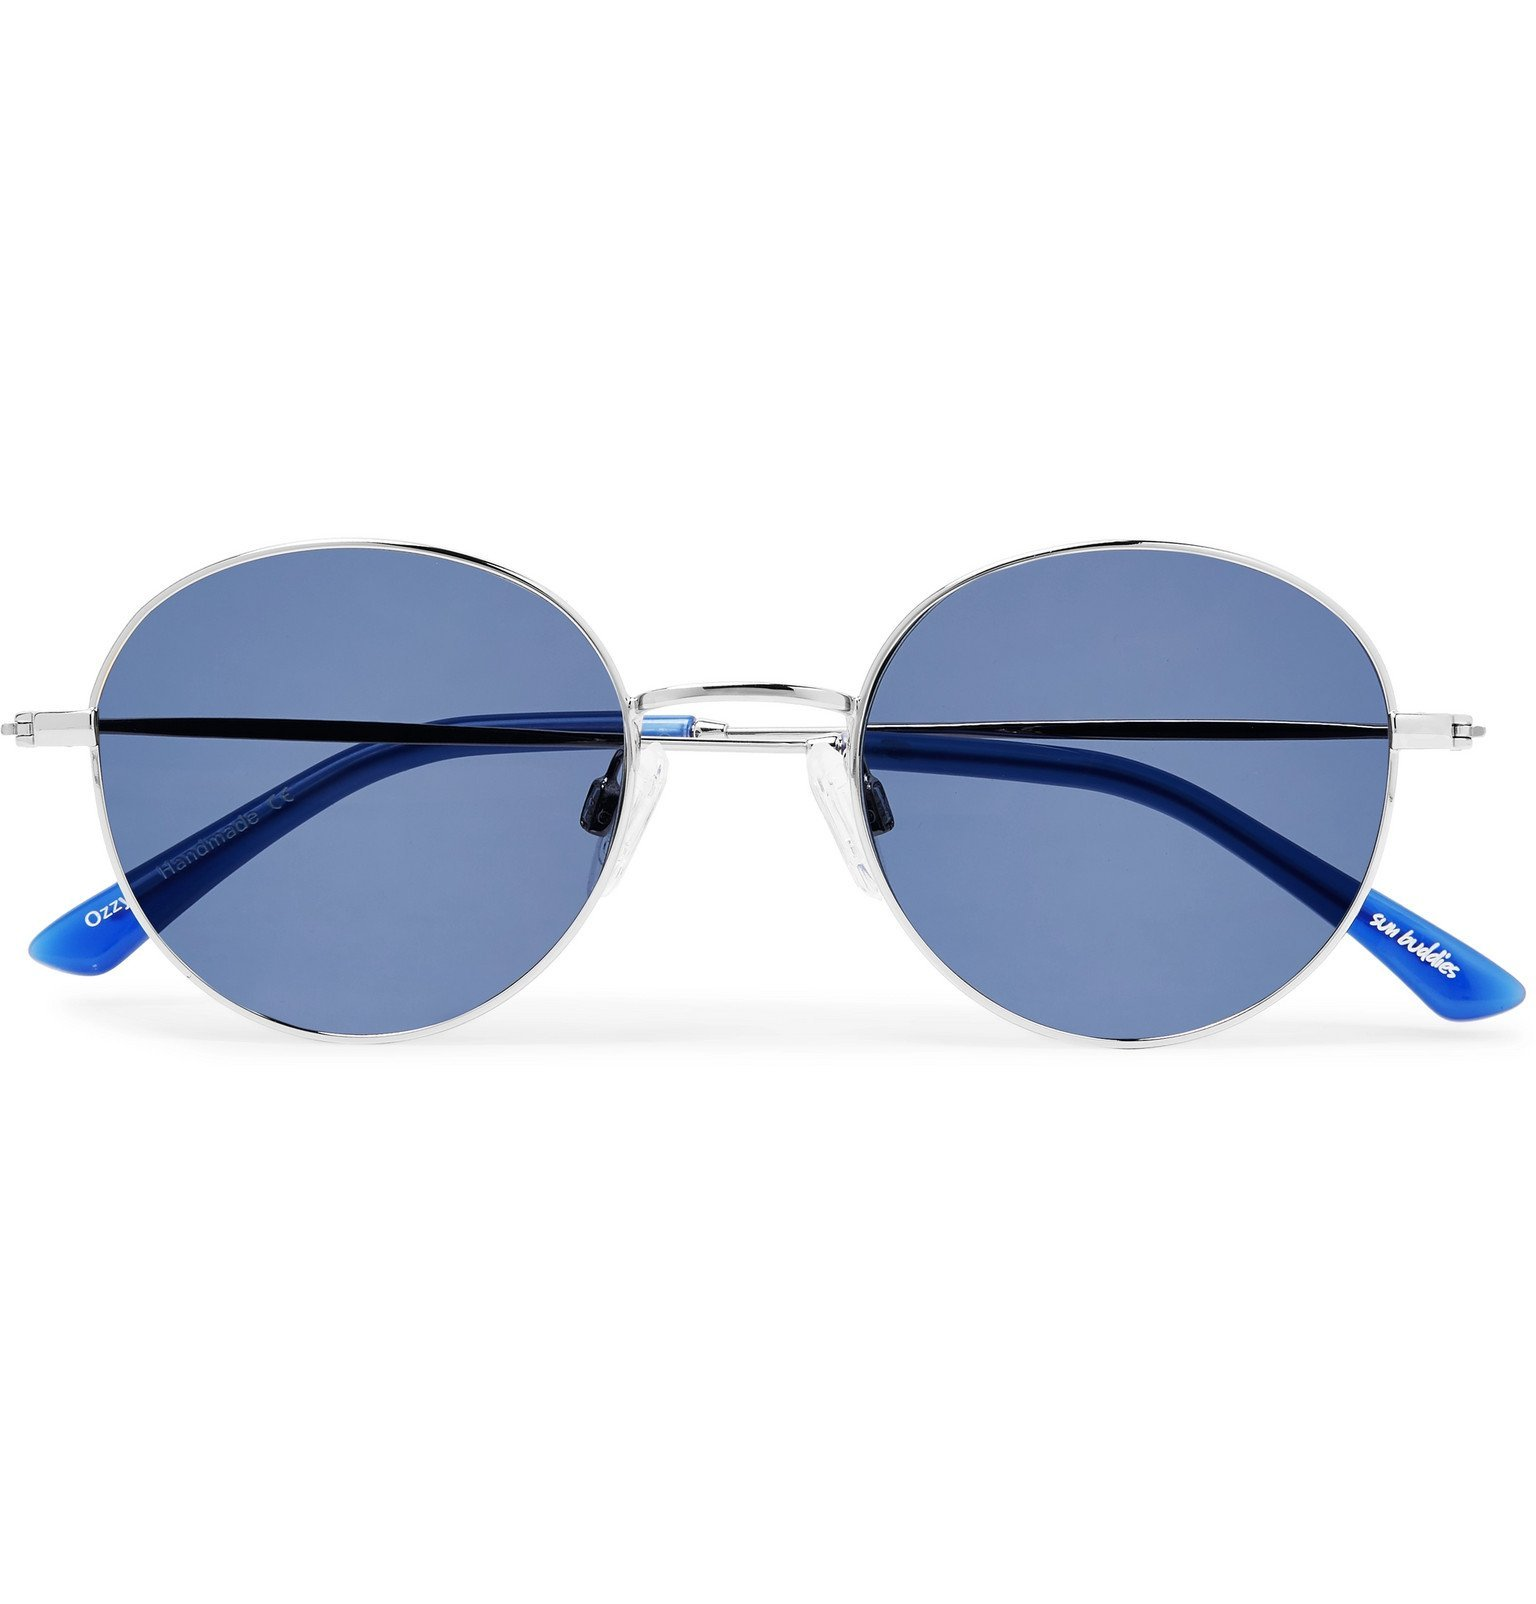 Photo: Sun Buddies - Ozzy Round-Frame Stainless Steel and Acetate Sunglasses - Silver